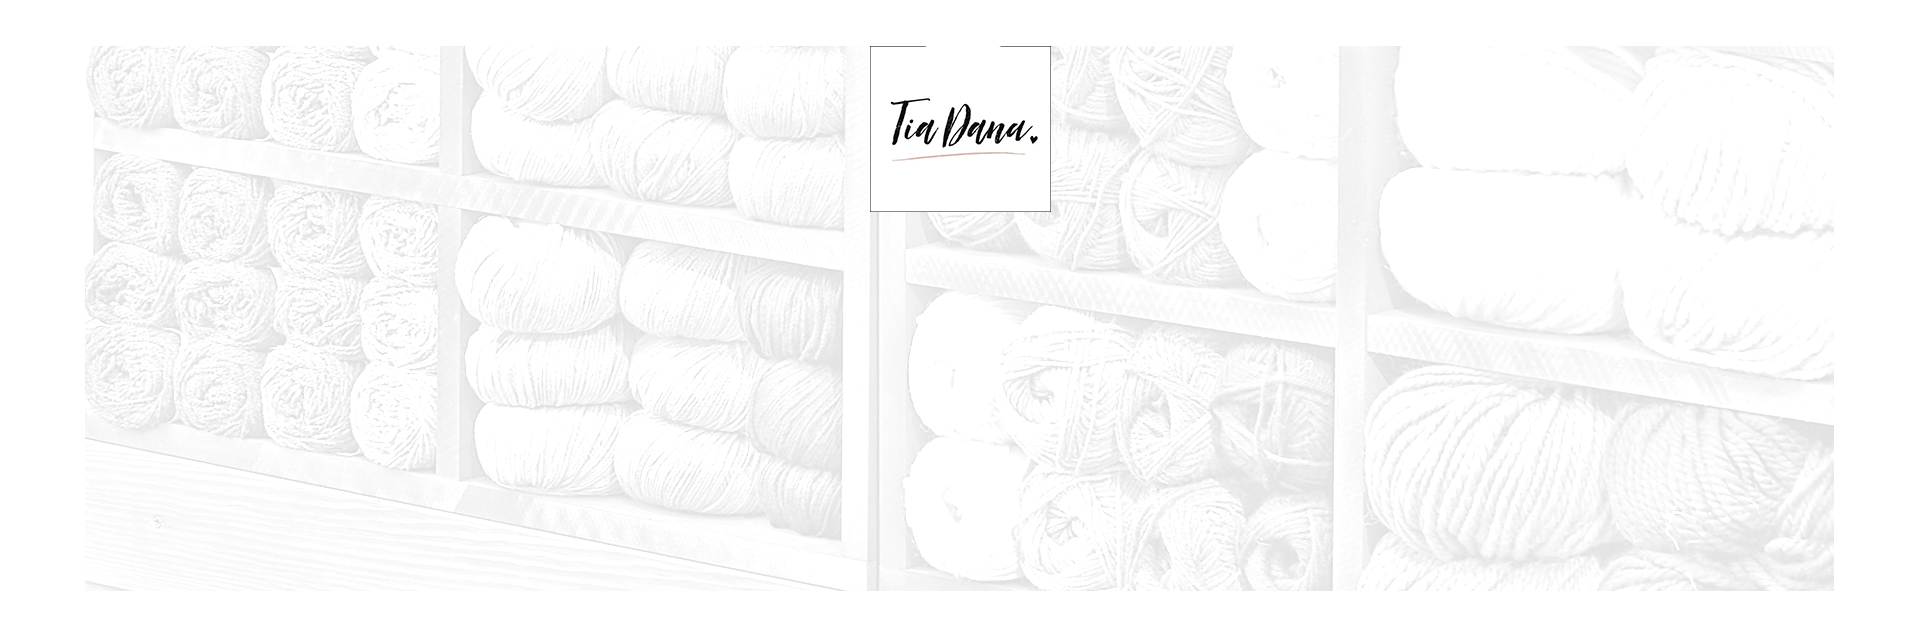 For three years, Tia Dana has been the area's leading destination for premium yarns and accessories…